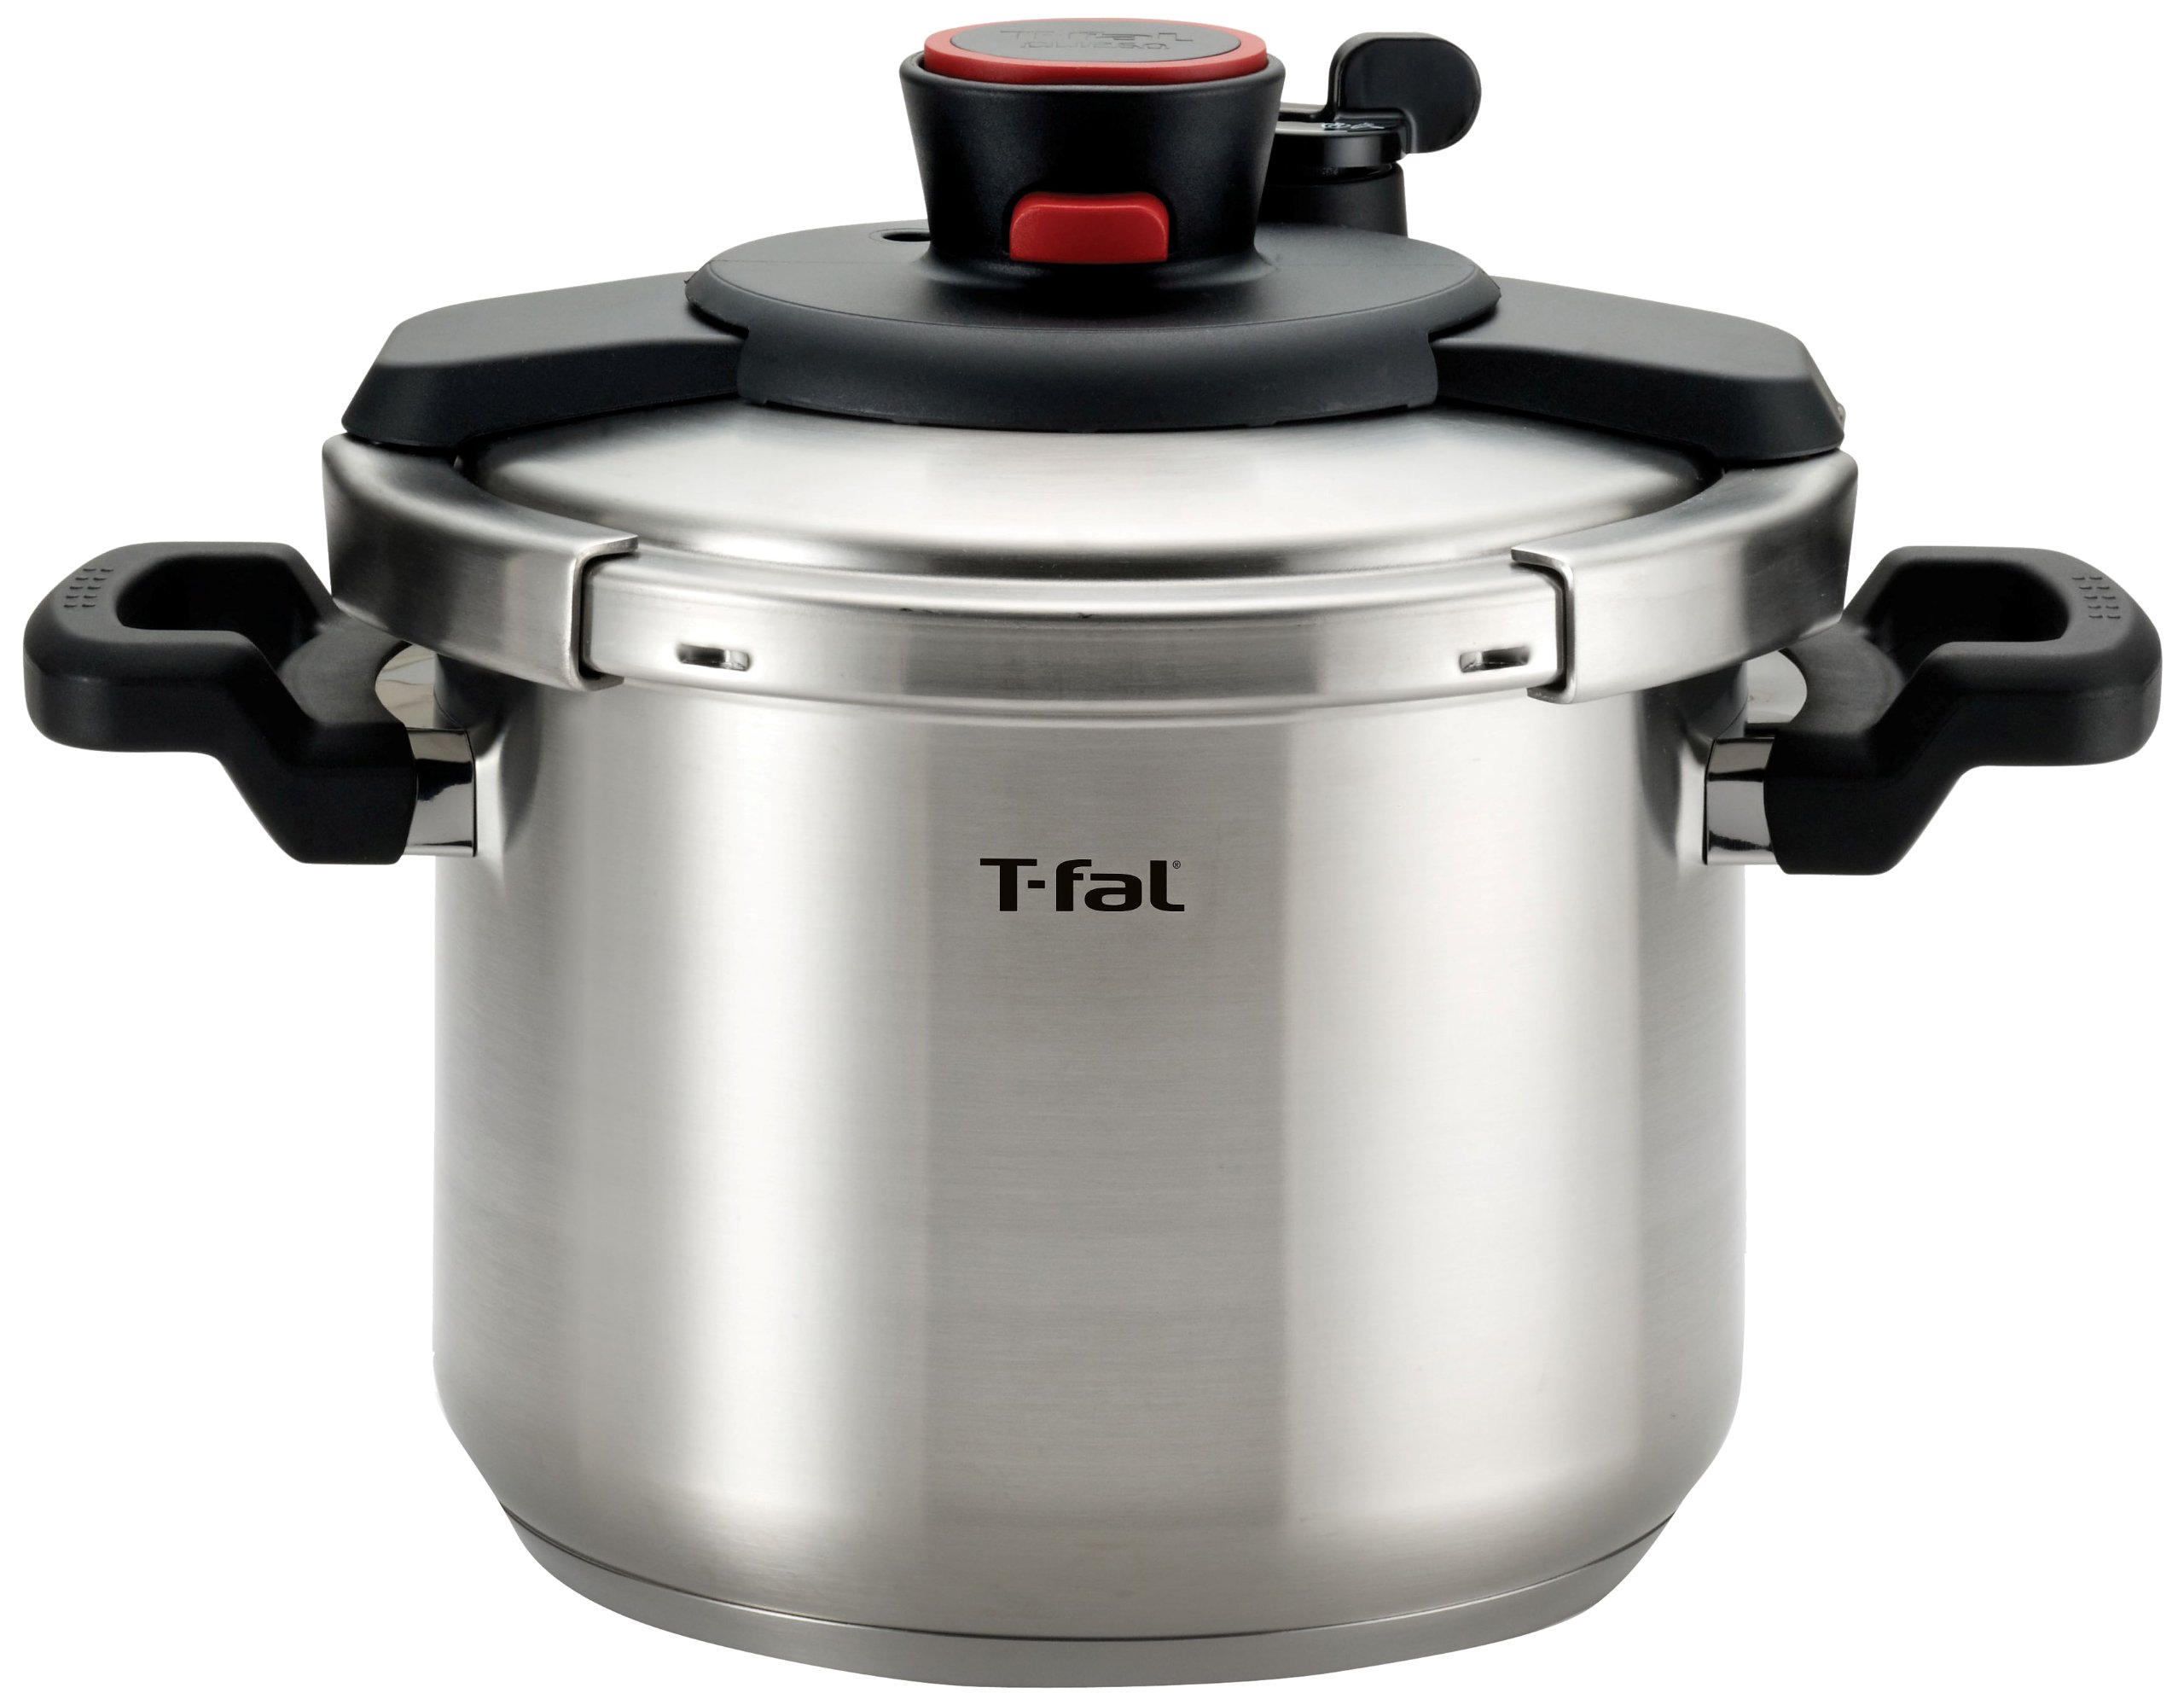 T-fal P45007 Clipso Stainless Steel Dishwasher Safe PTFE PFOA and Cadmium Free 12-PSI Pressure Cooker Cookware, 6.3-Quart, Silver by T-fal